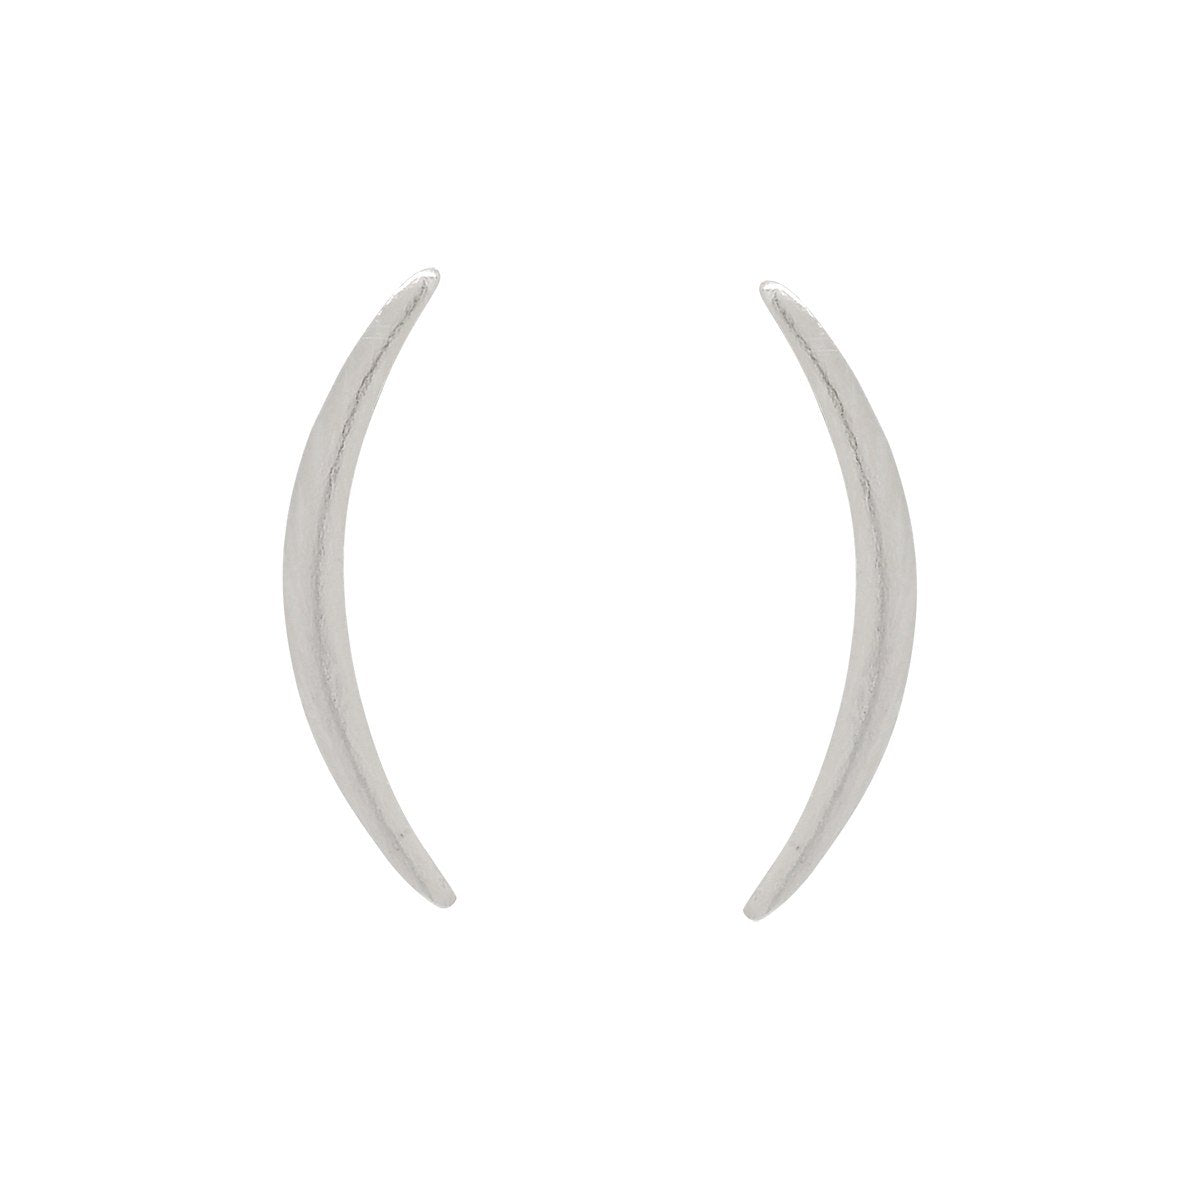 Thin Curved Crescent Moon Studs